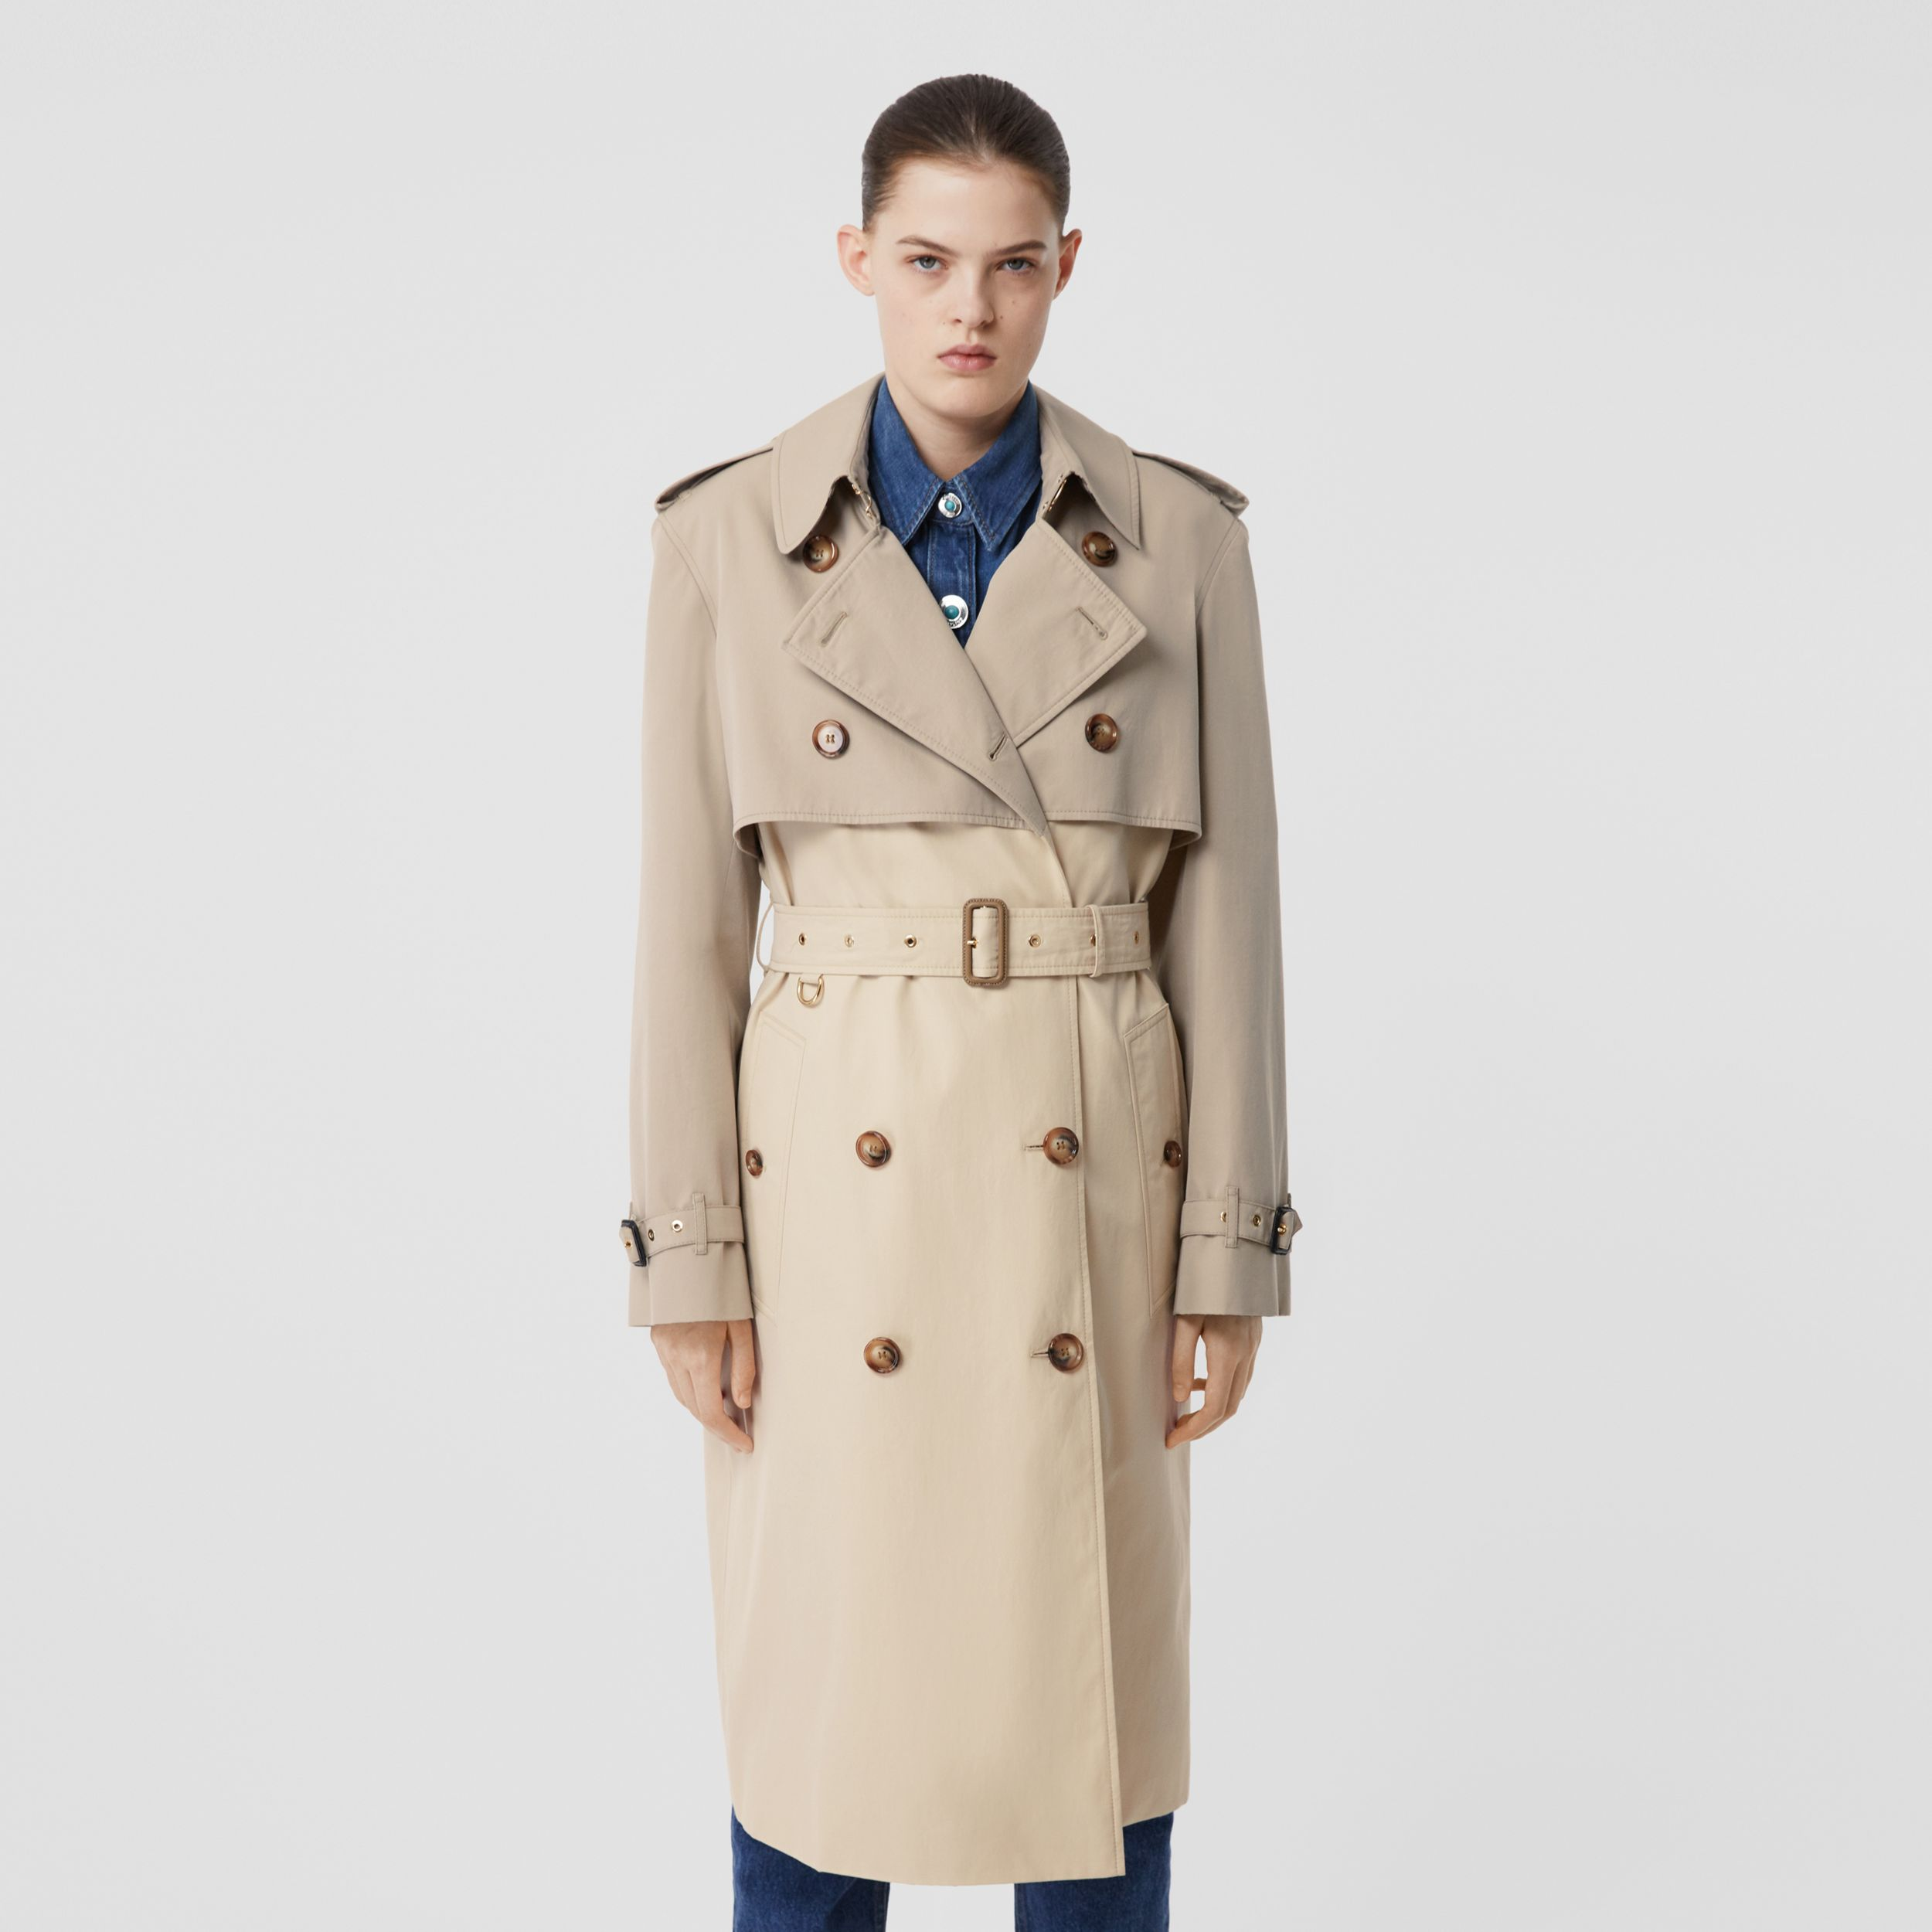 Two-tone Reconstructed Trench Coat in Light Sand - Women | Burberry - 1